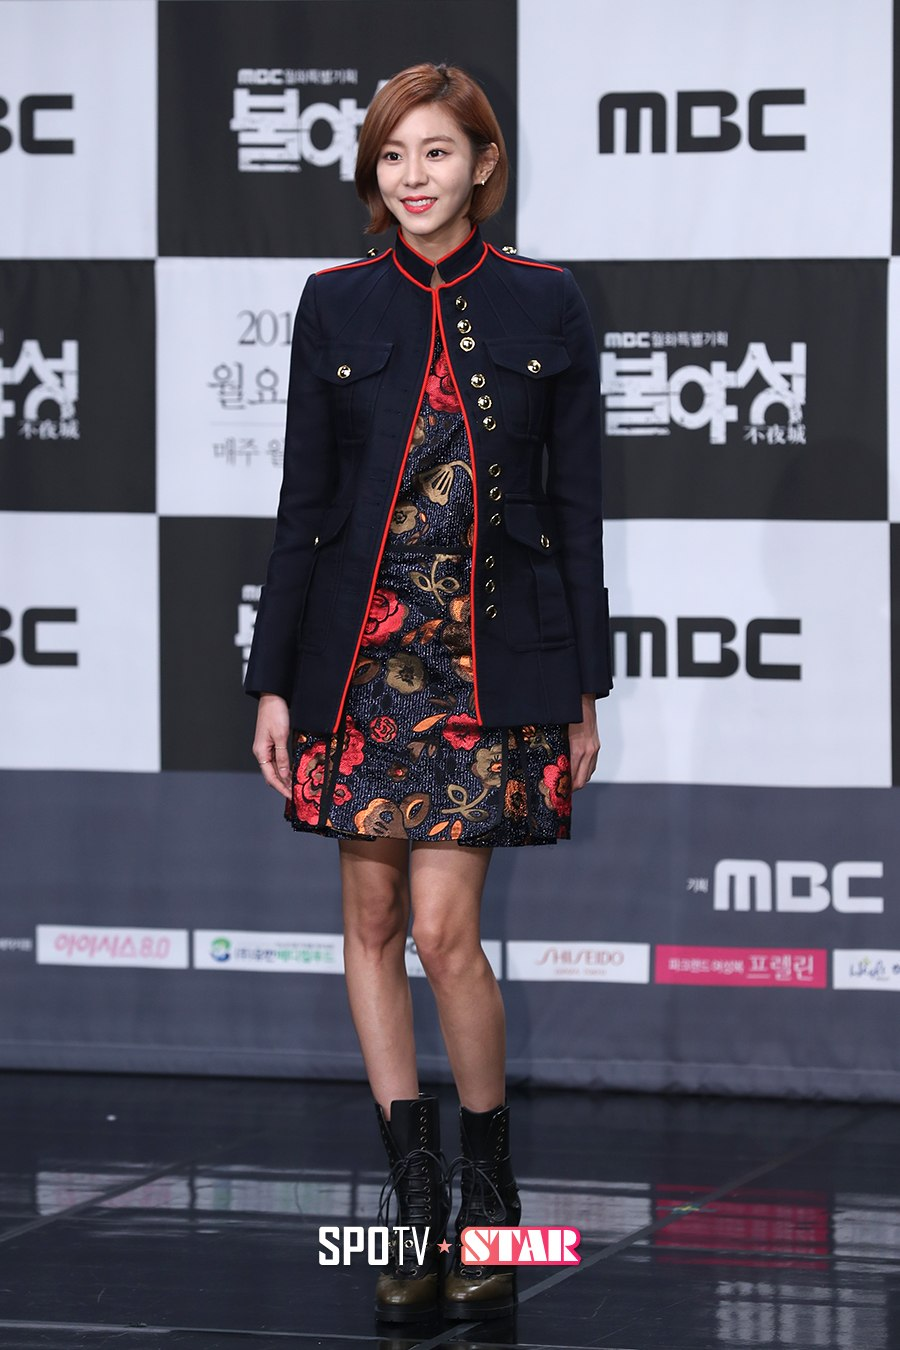 Is she too thin? / Source: SPOTV News